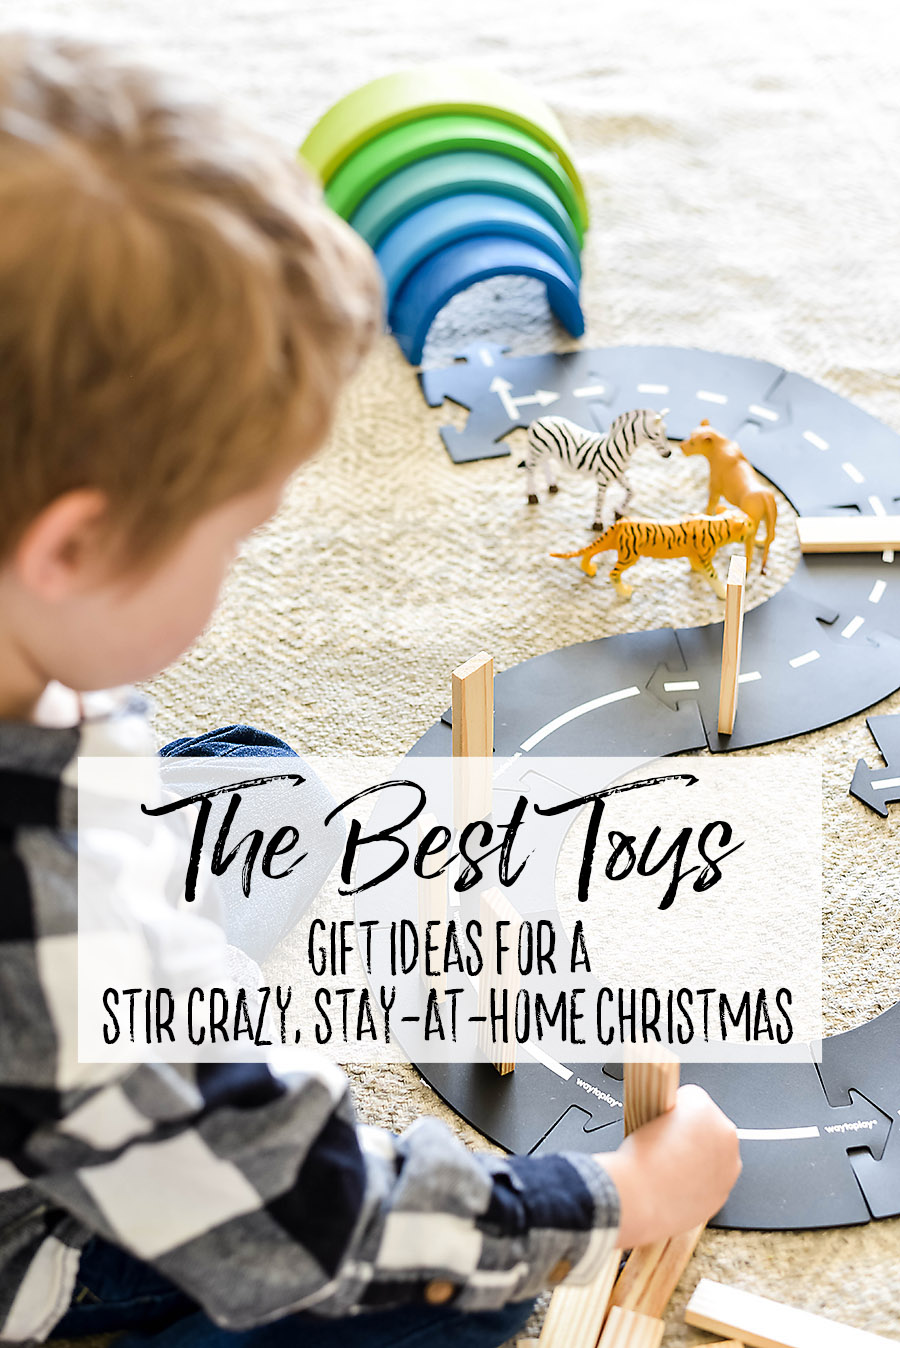 Simple Toys Gift Ideas - Intentional Purposeful Gift Guide for Kids - Our Handcrafted Life